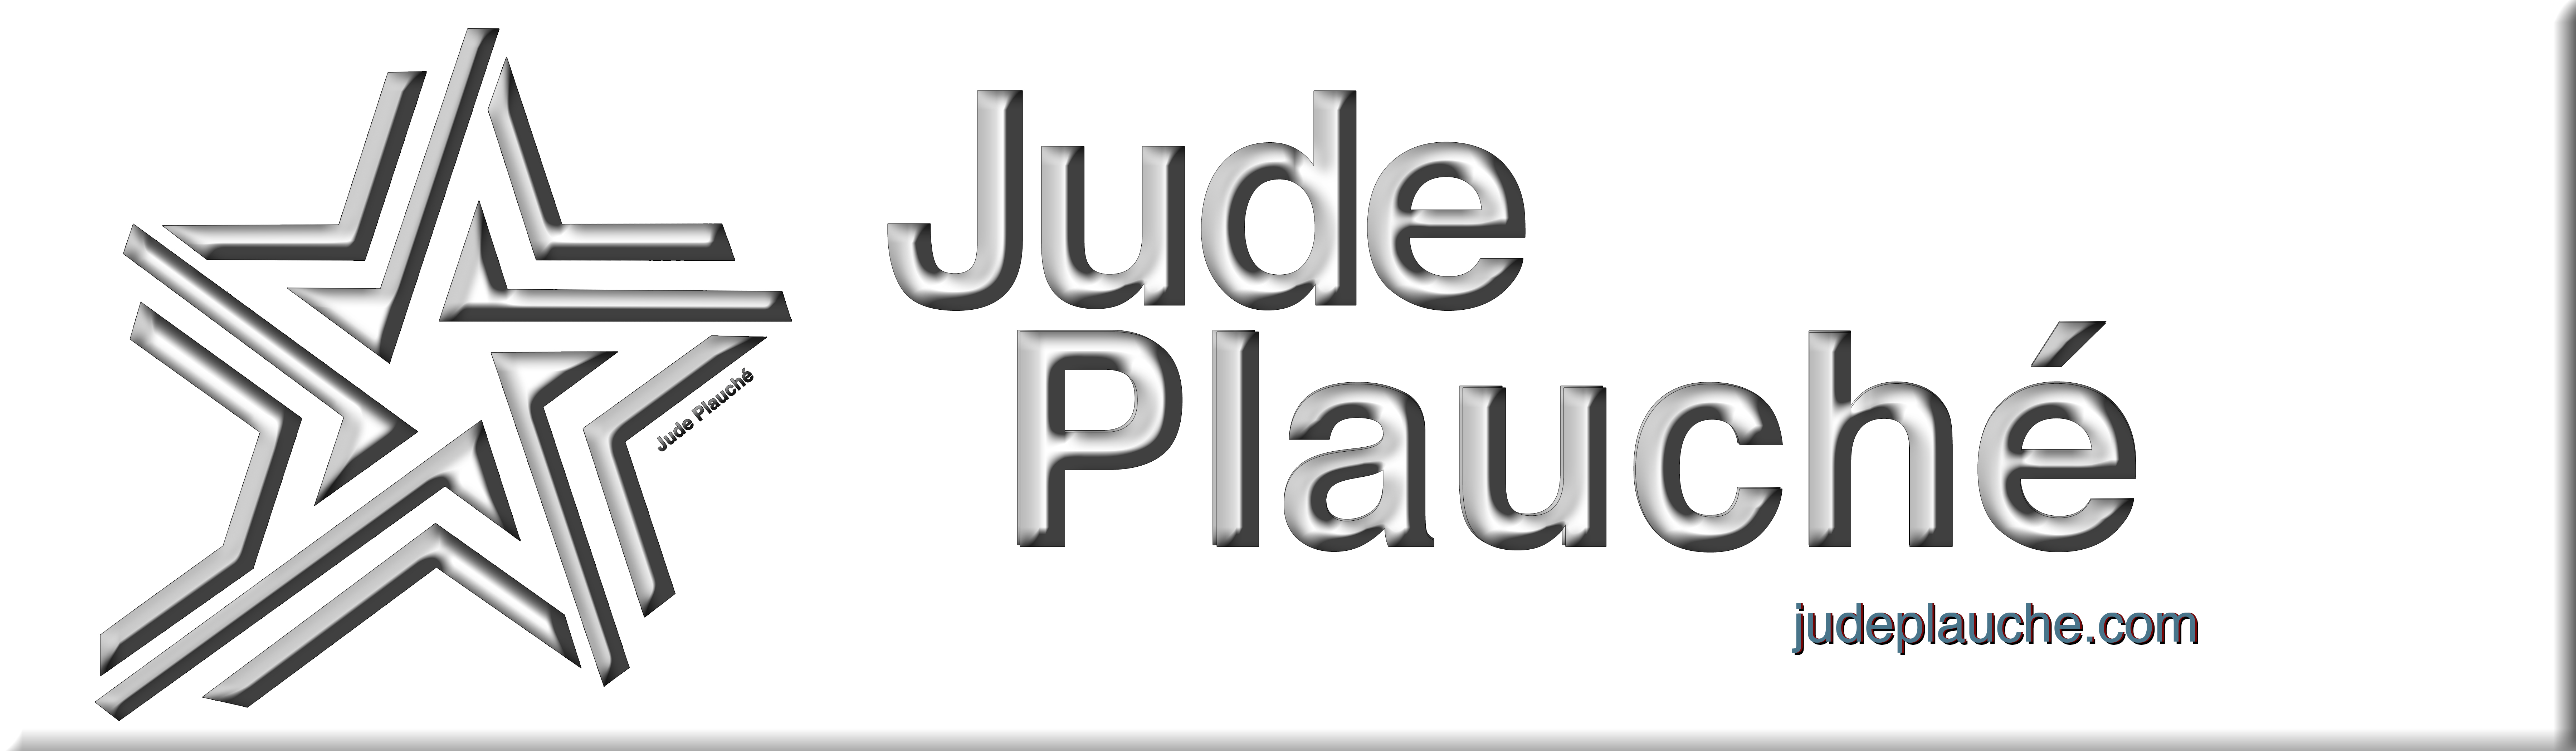 Jude Plauche DesignStratus.com Web Design Designing The Cloud Logo